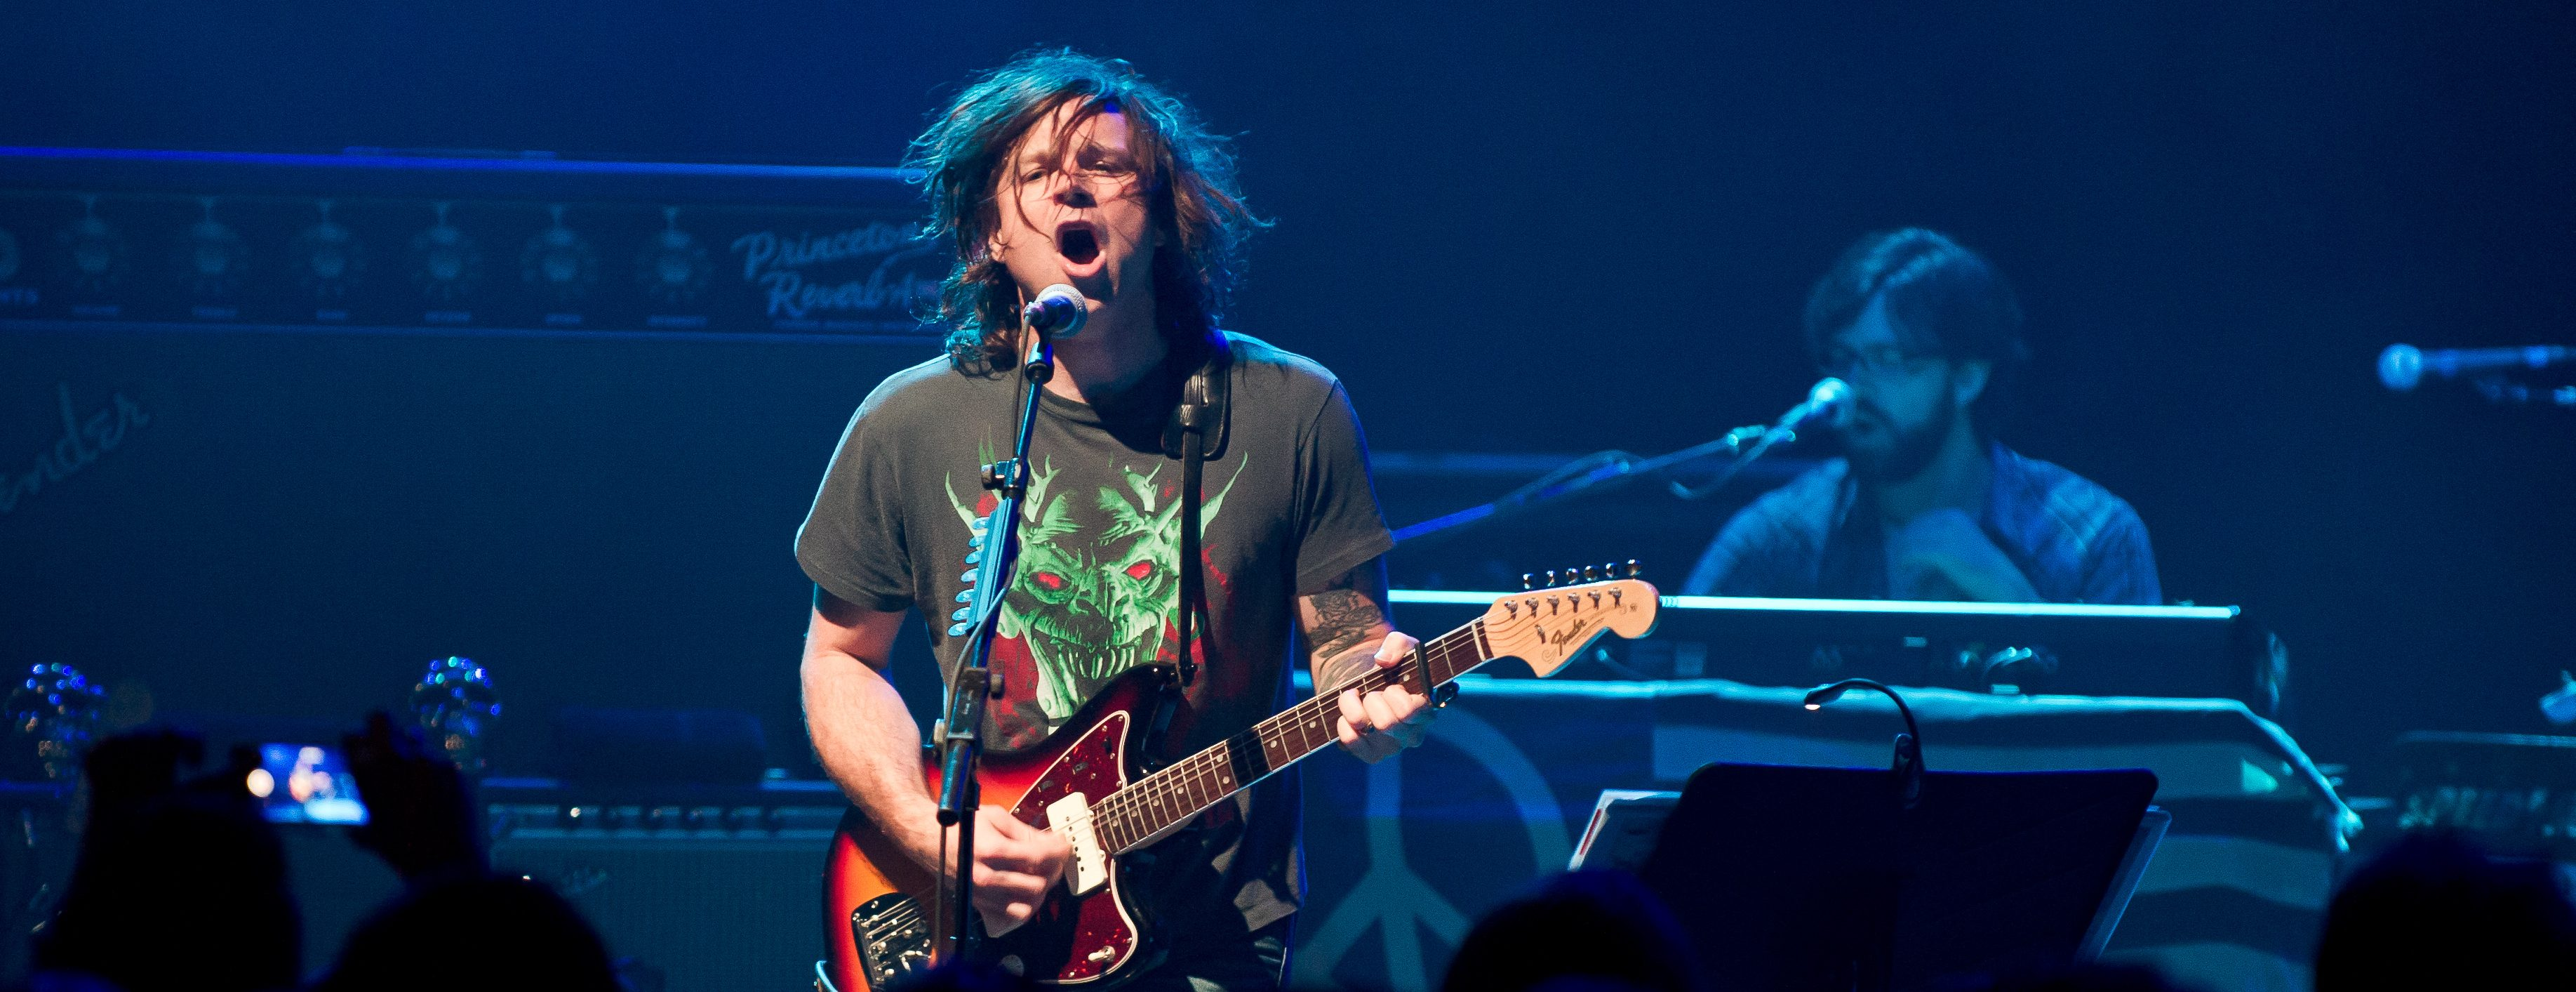 Forget Boycotting Ryan Adams, It's the Broken Record That Needs Fixing